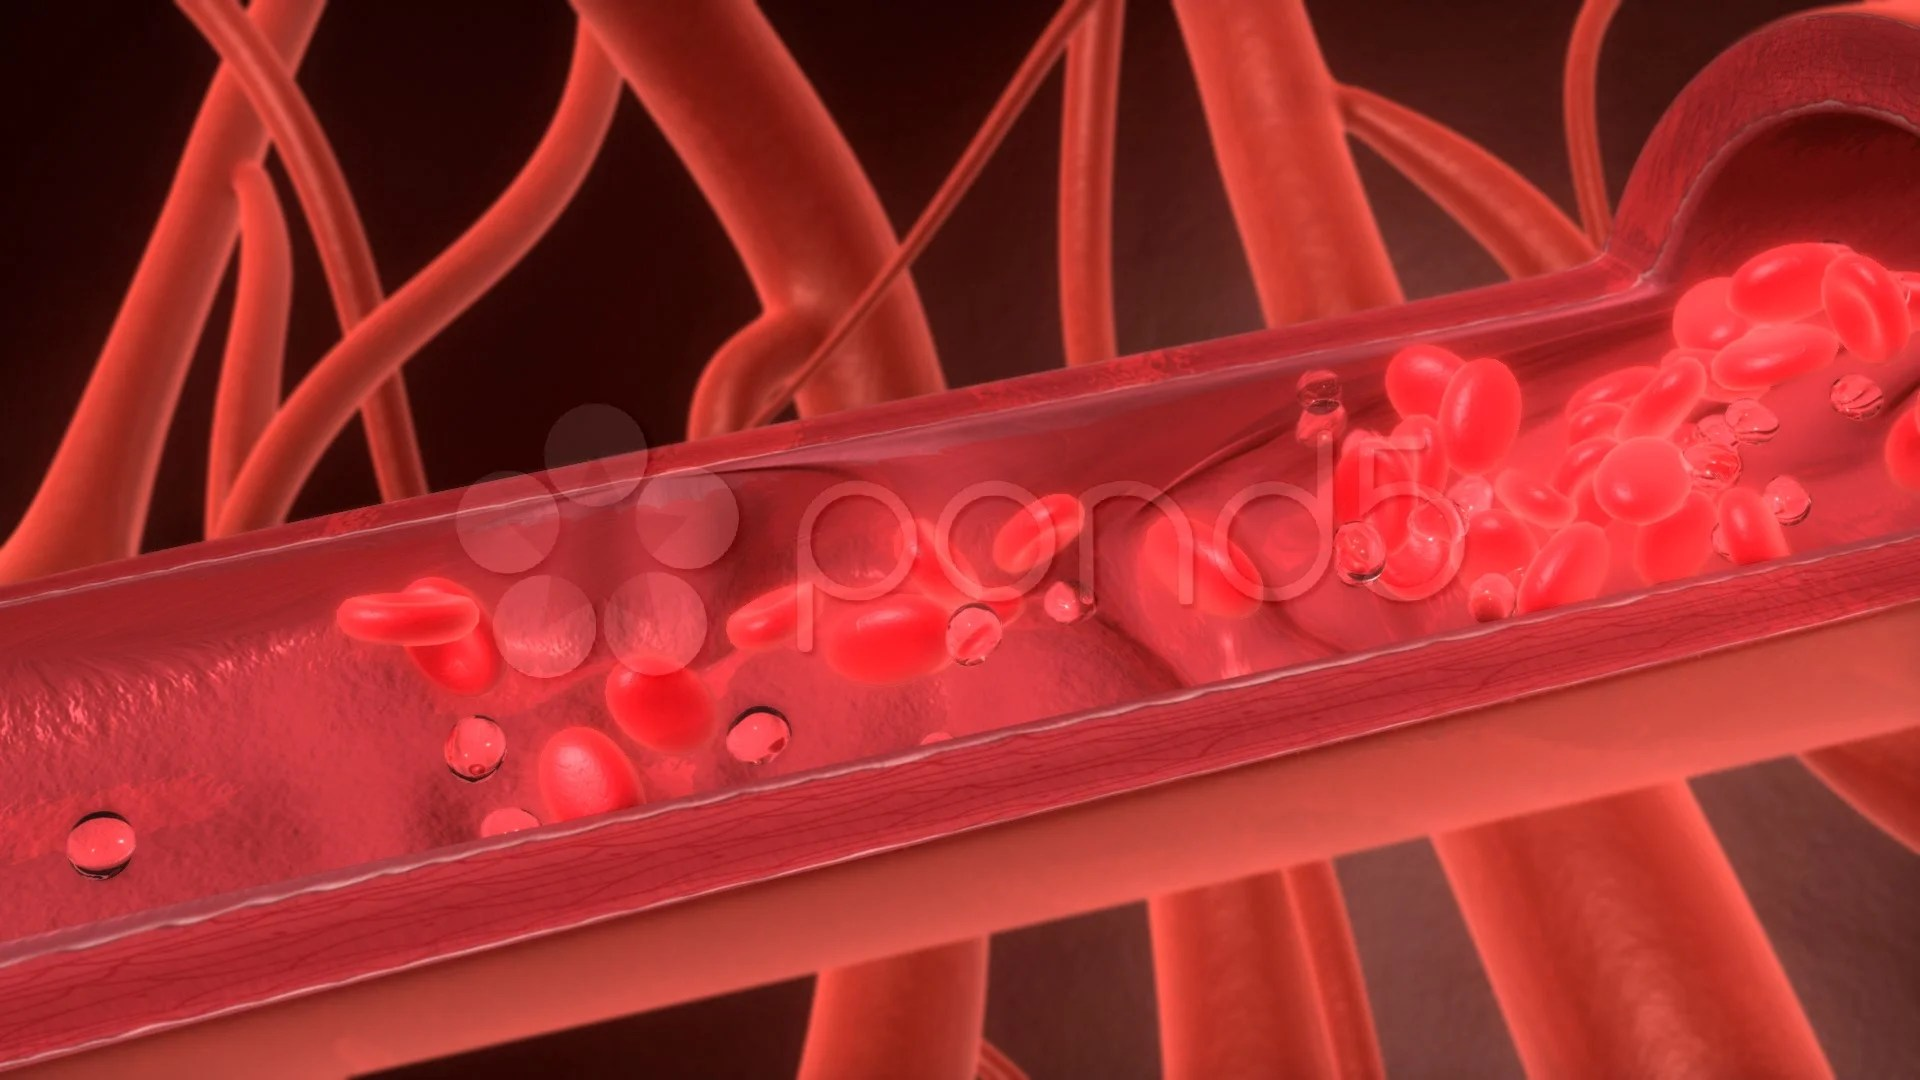 Animated 3d Wallpaper Gifs Looping 3d Red Cell Flowing In Blood Vessel Hd Footage 000651708